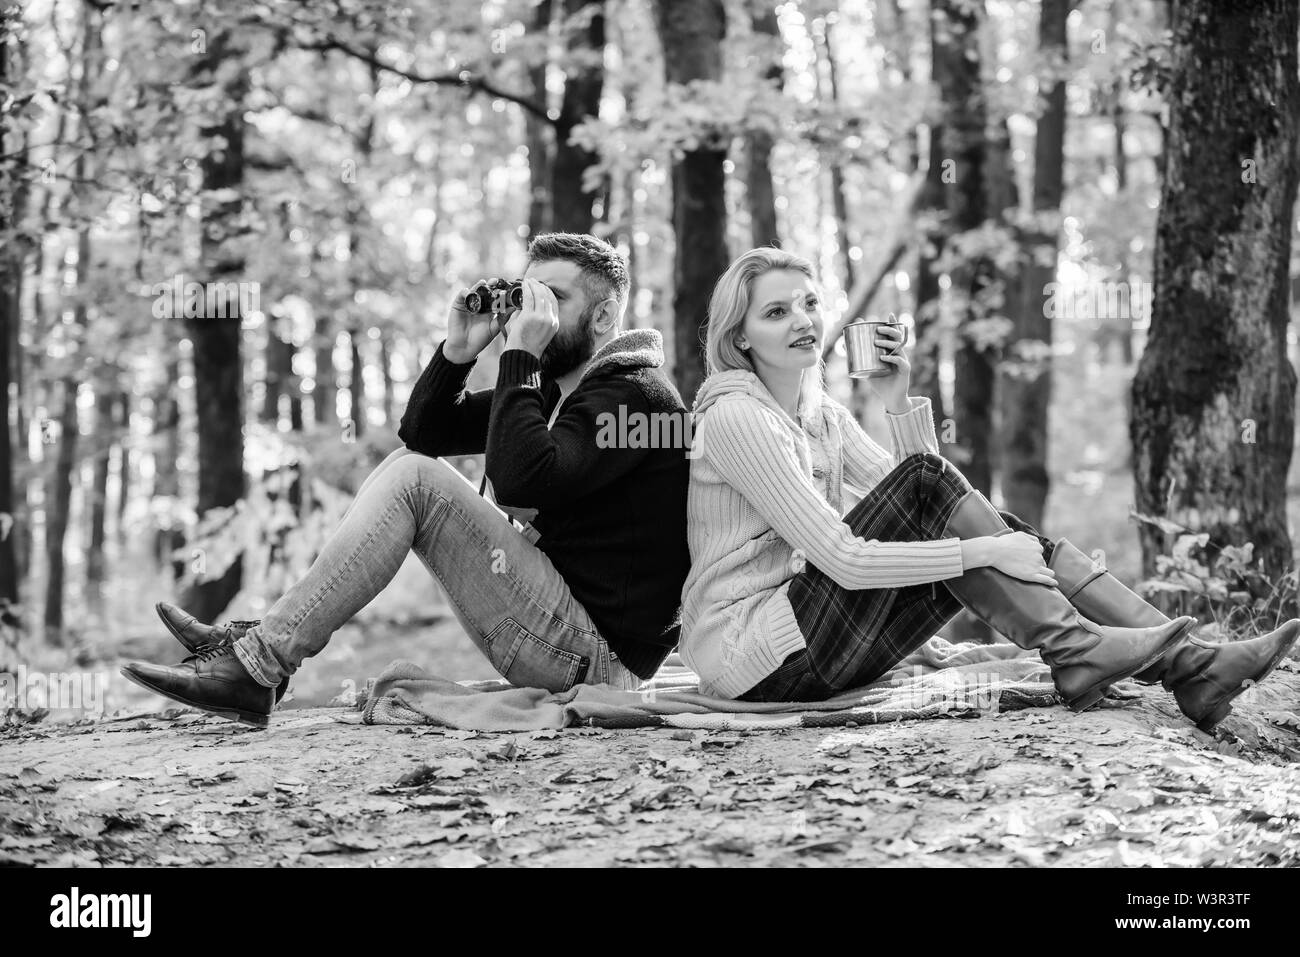 Relaxing in park together. Happy loving couple relaxing in park together. Couple in love tourists relaxing picnic blanket. Man with binoculars and wom - Stock Image